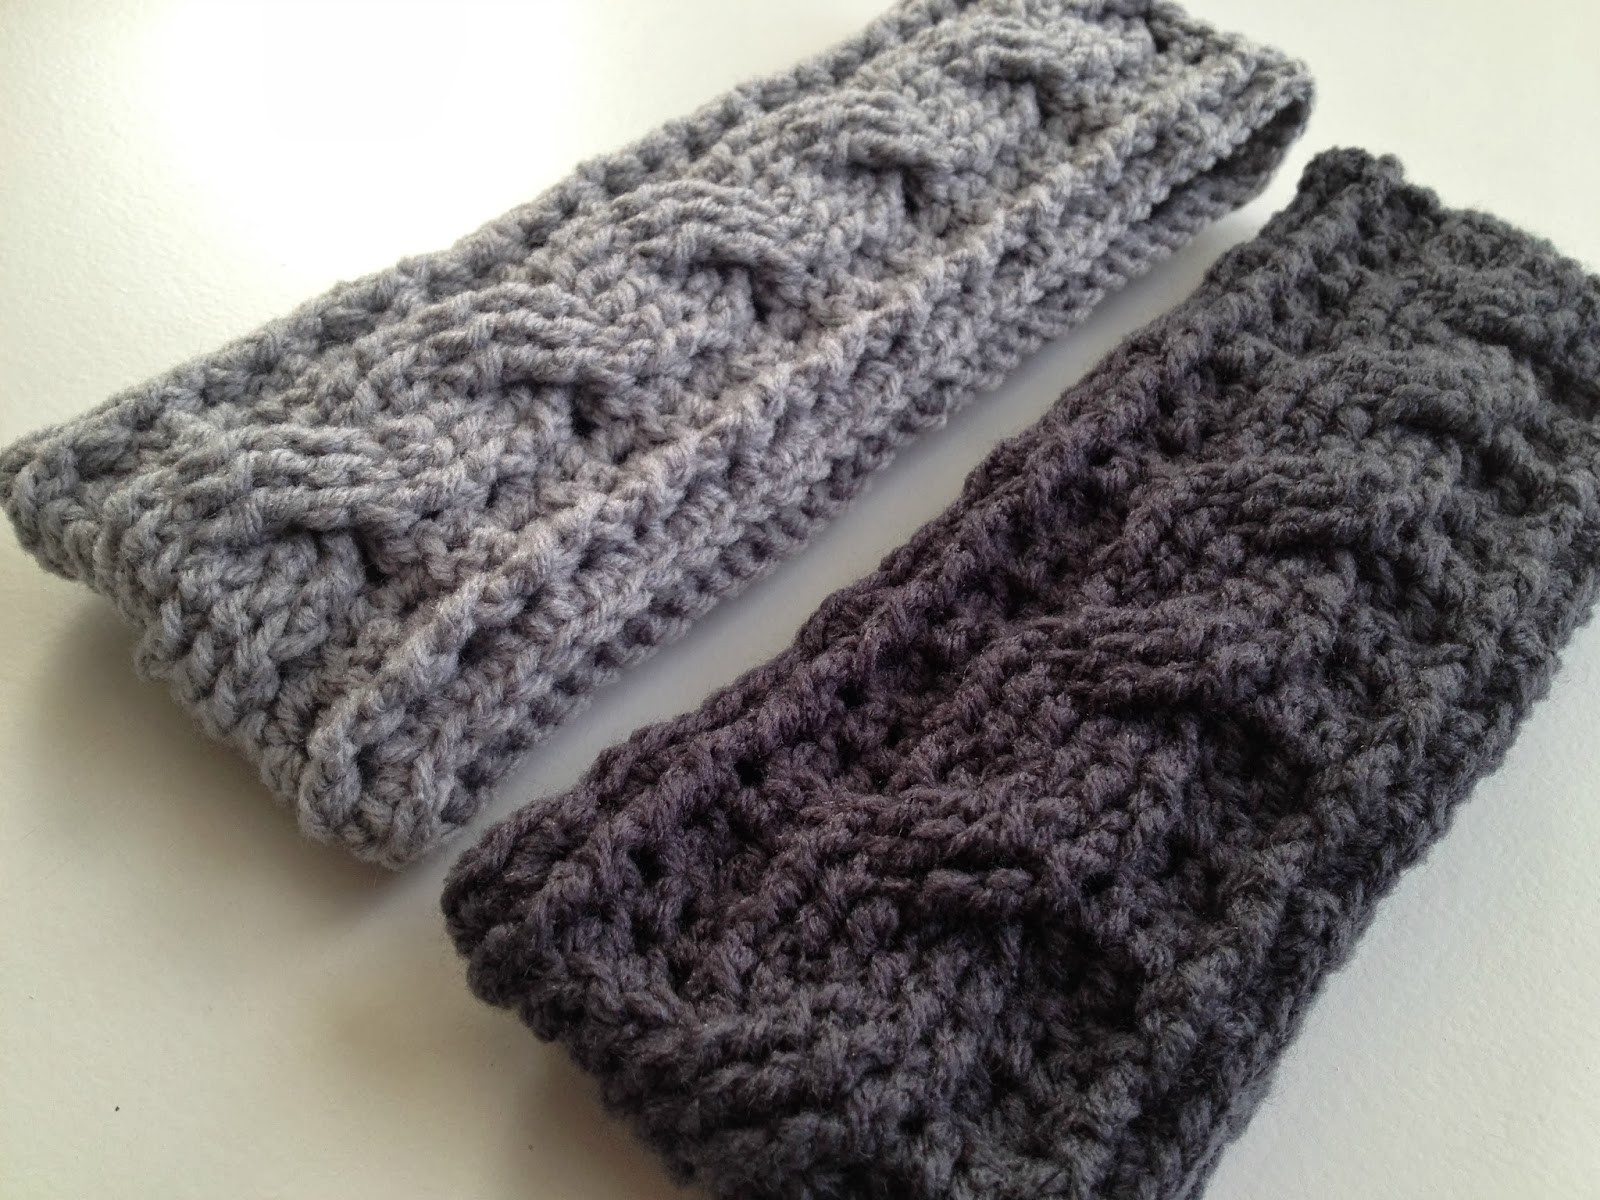 Crochet Cables Inspirational Cable Crochet Headband Pattern Of Amazing 48 Pics Crochet Cables